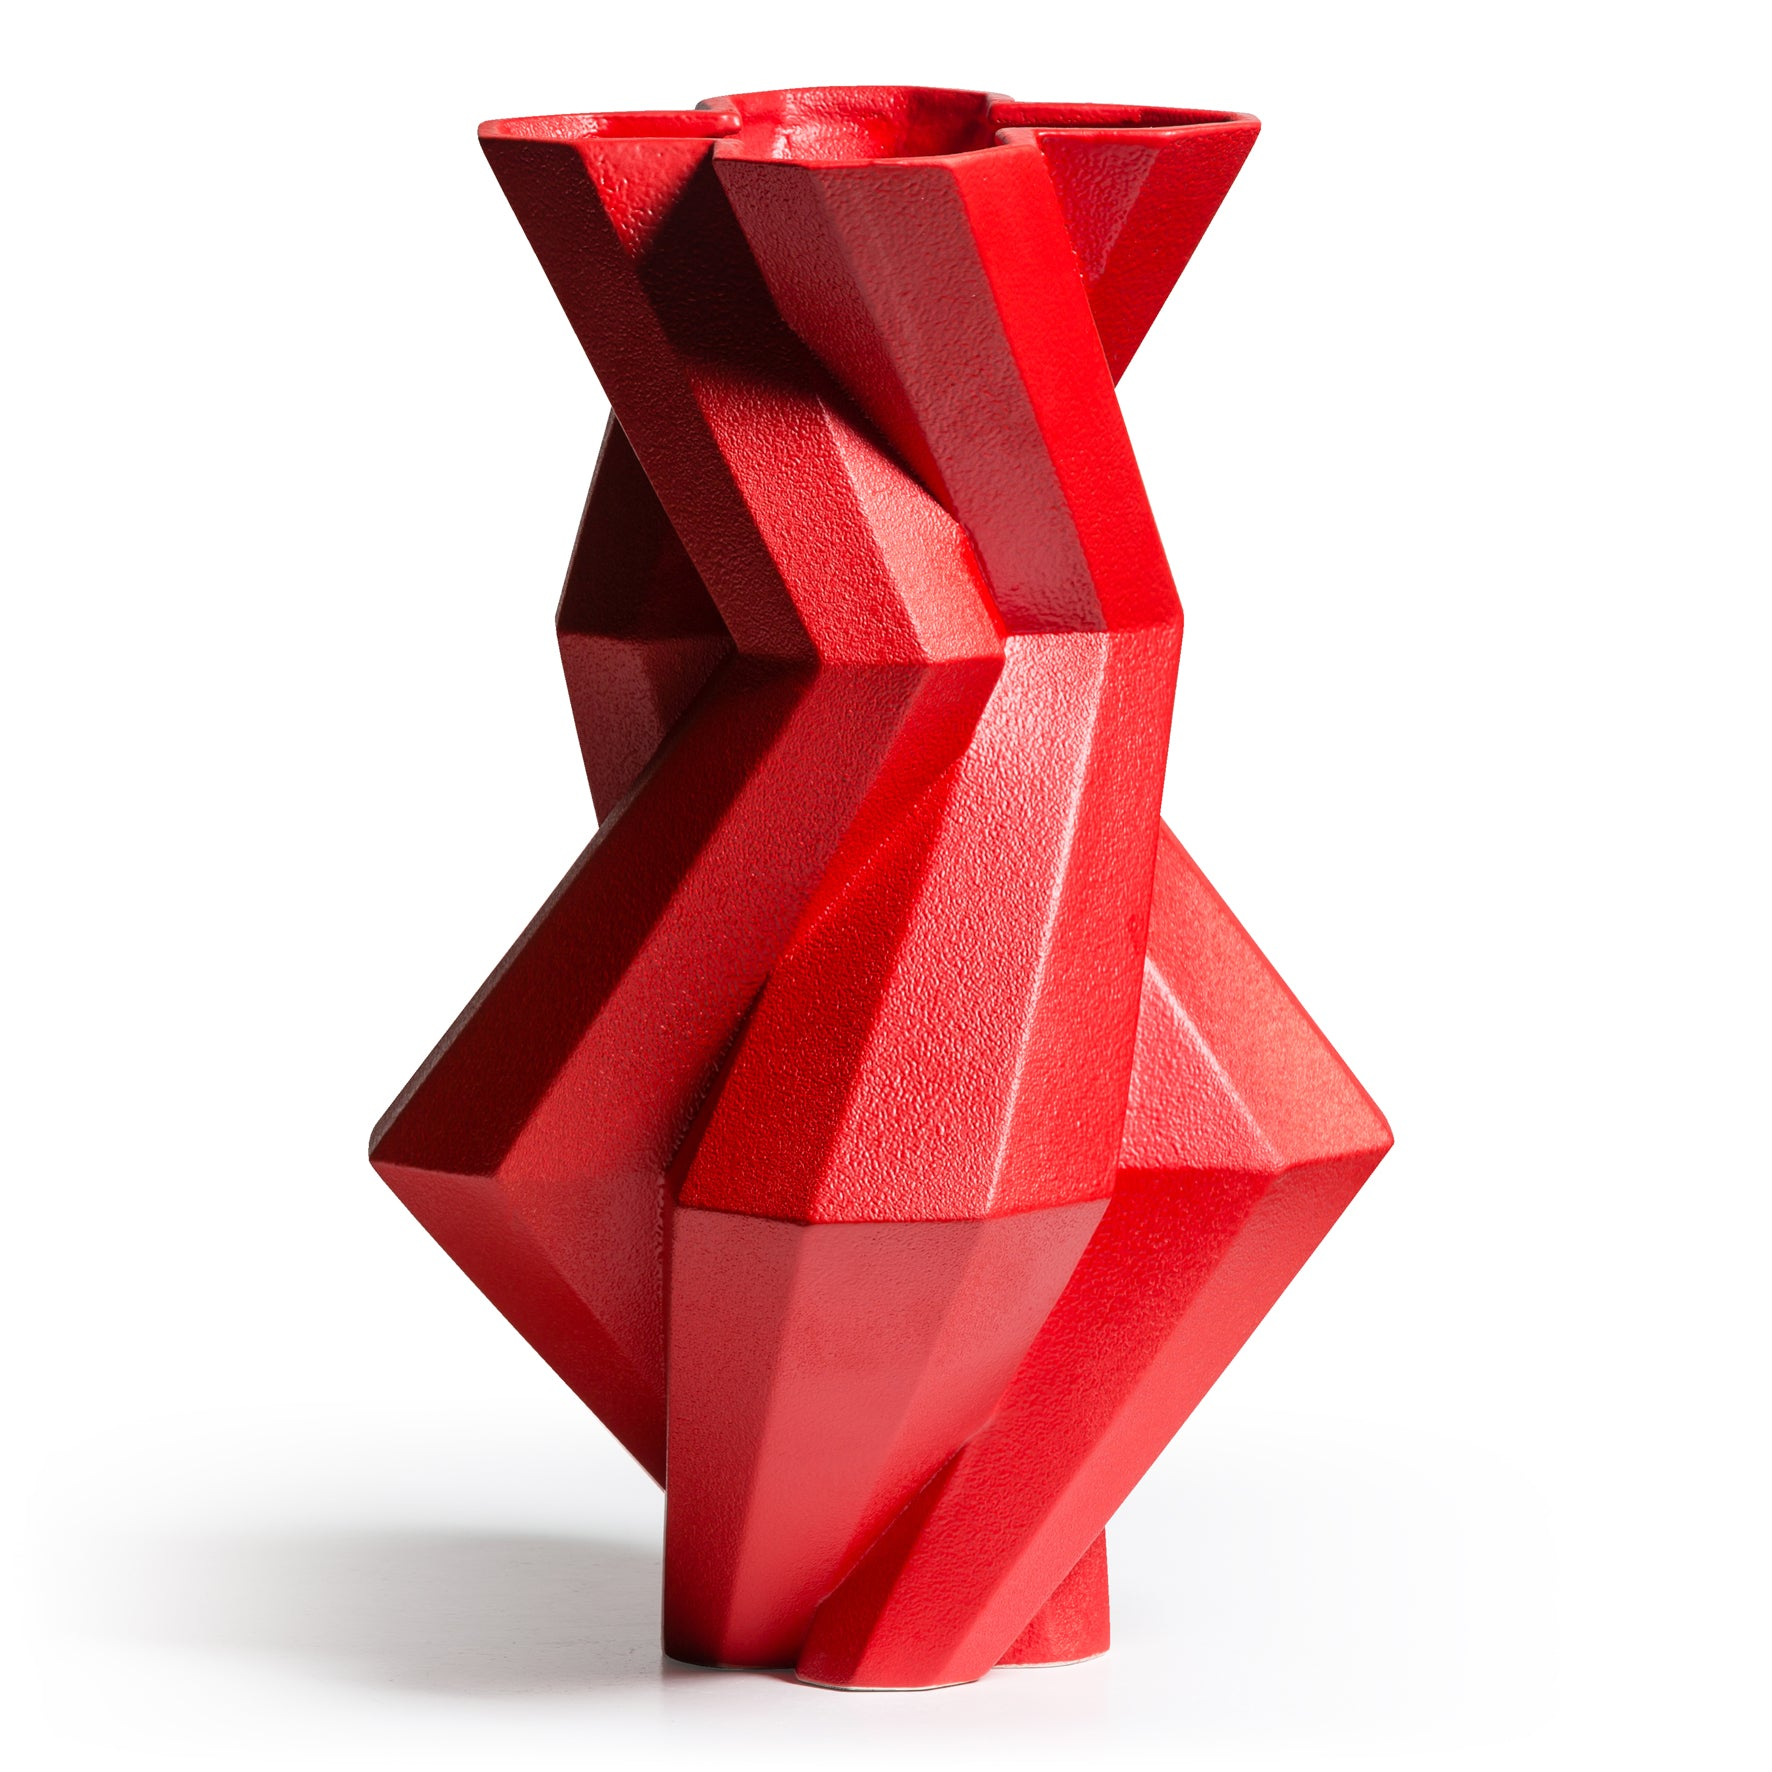 Fortress Castle Vase </br> Red Ceramic